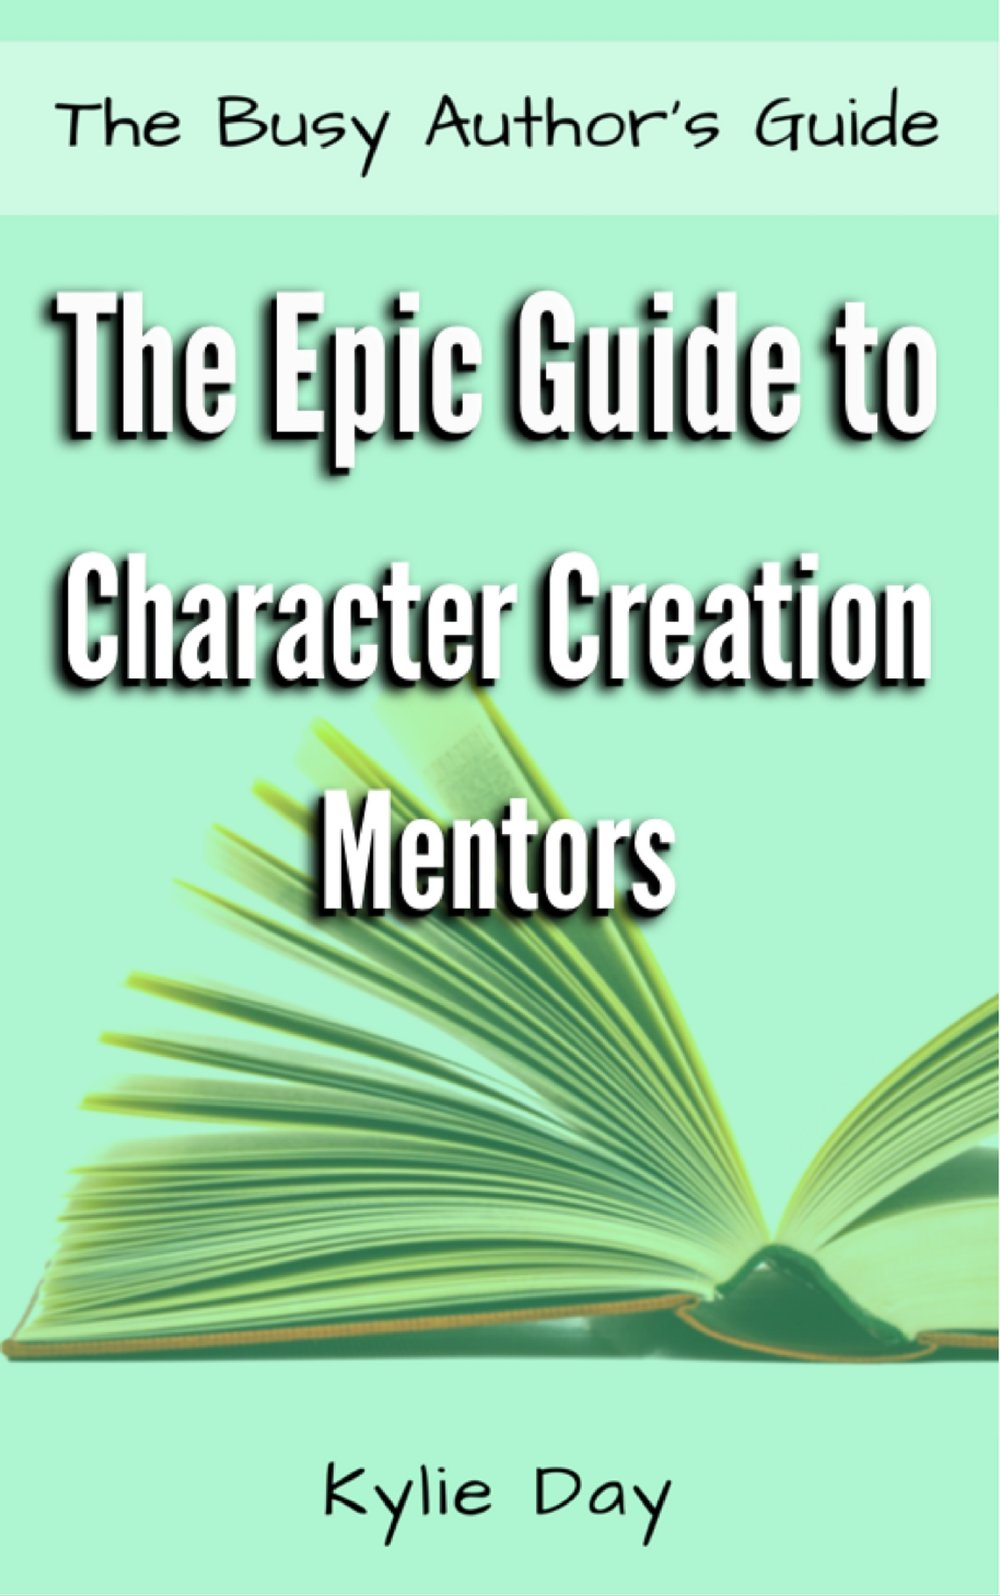 THE EPIC GUIDE TO CHARACTER CREATION: MENTORS